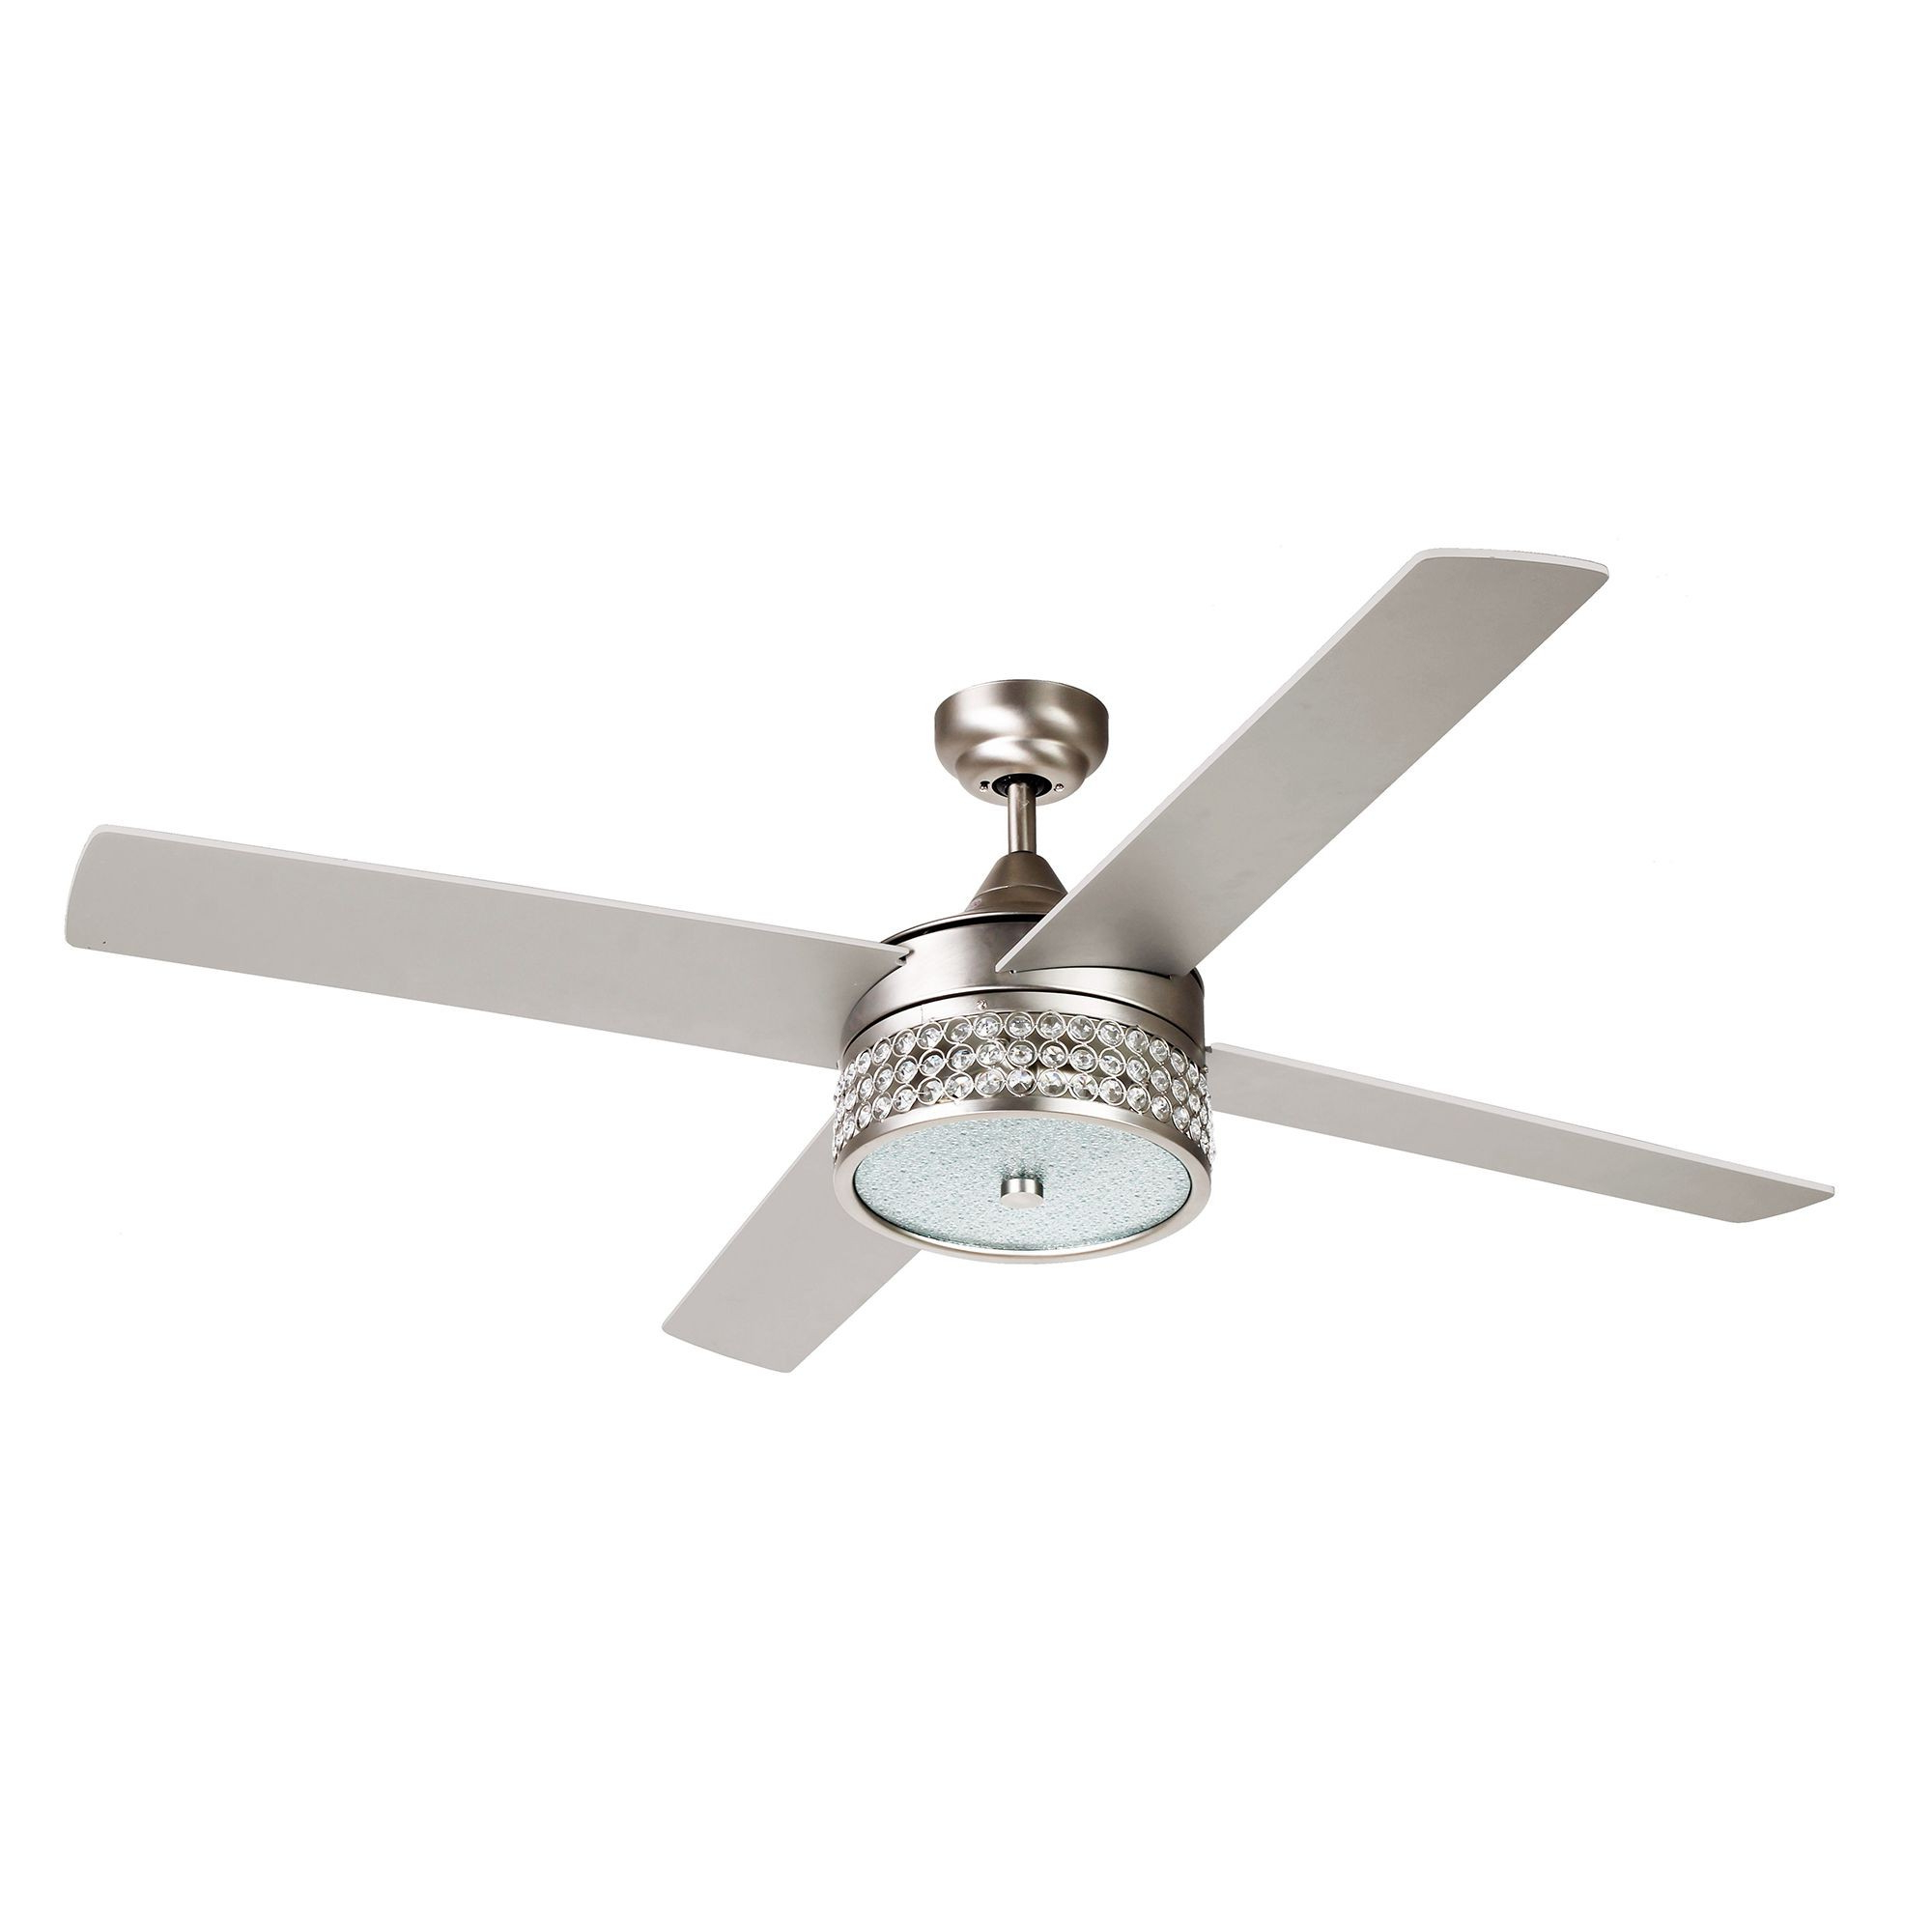 """52"""" Cason Modern Crystal Chandelier Ceiling Fan With Led Light And Remote  Control, 4 Blades, Satin Nickel In Best And Newest Cason 4 Blade Ceiling Fans (View 2 of 20)"""